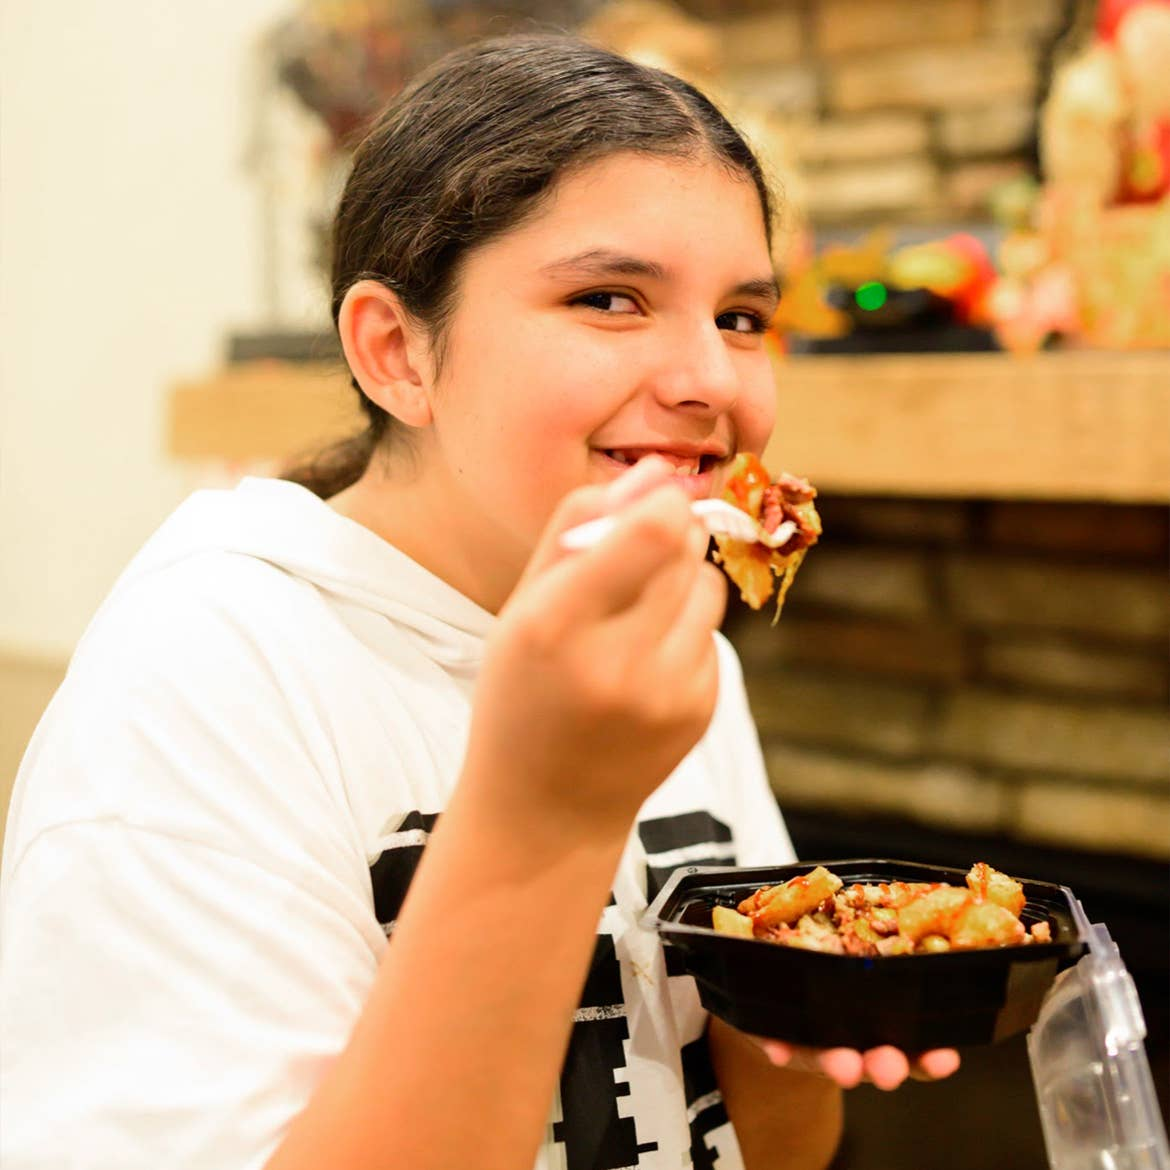 A young girl eats some loaded buffalo chicken mac & cheese indoors.